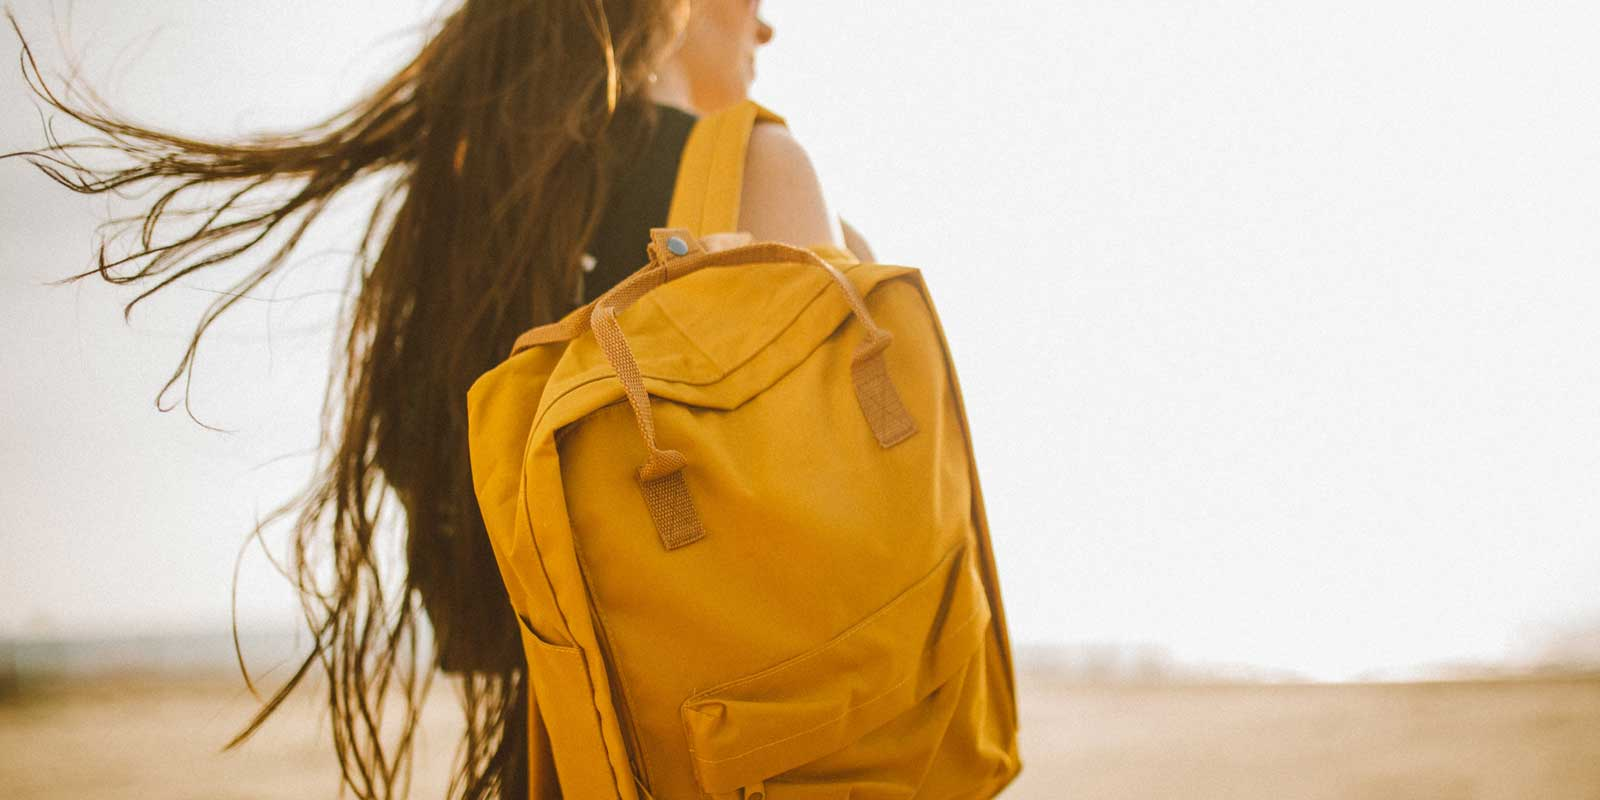 Close up of a woman carrying a mustard yellow backpack